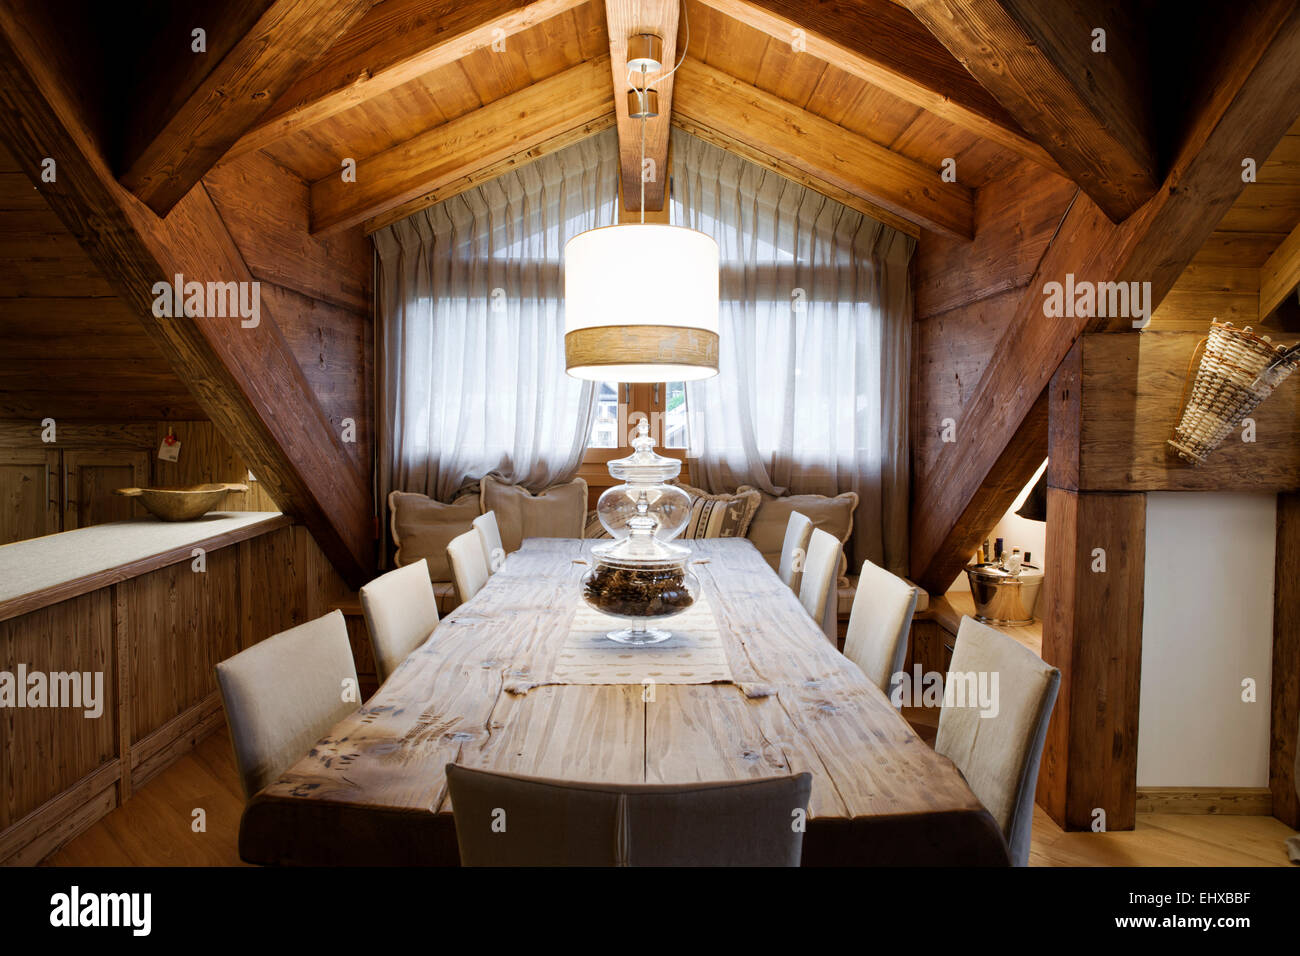 Alpine attic dining room table for eight seats - Stock Image